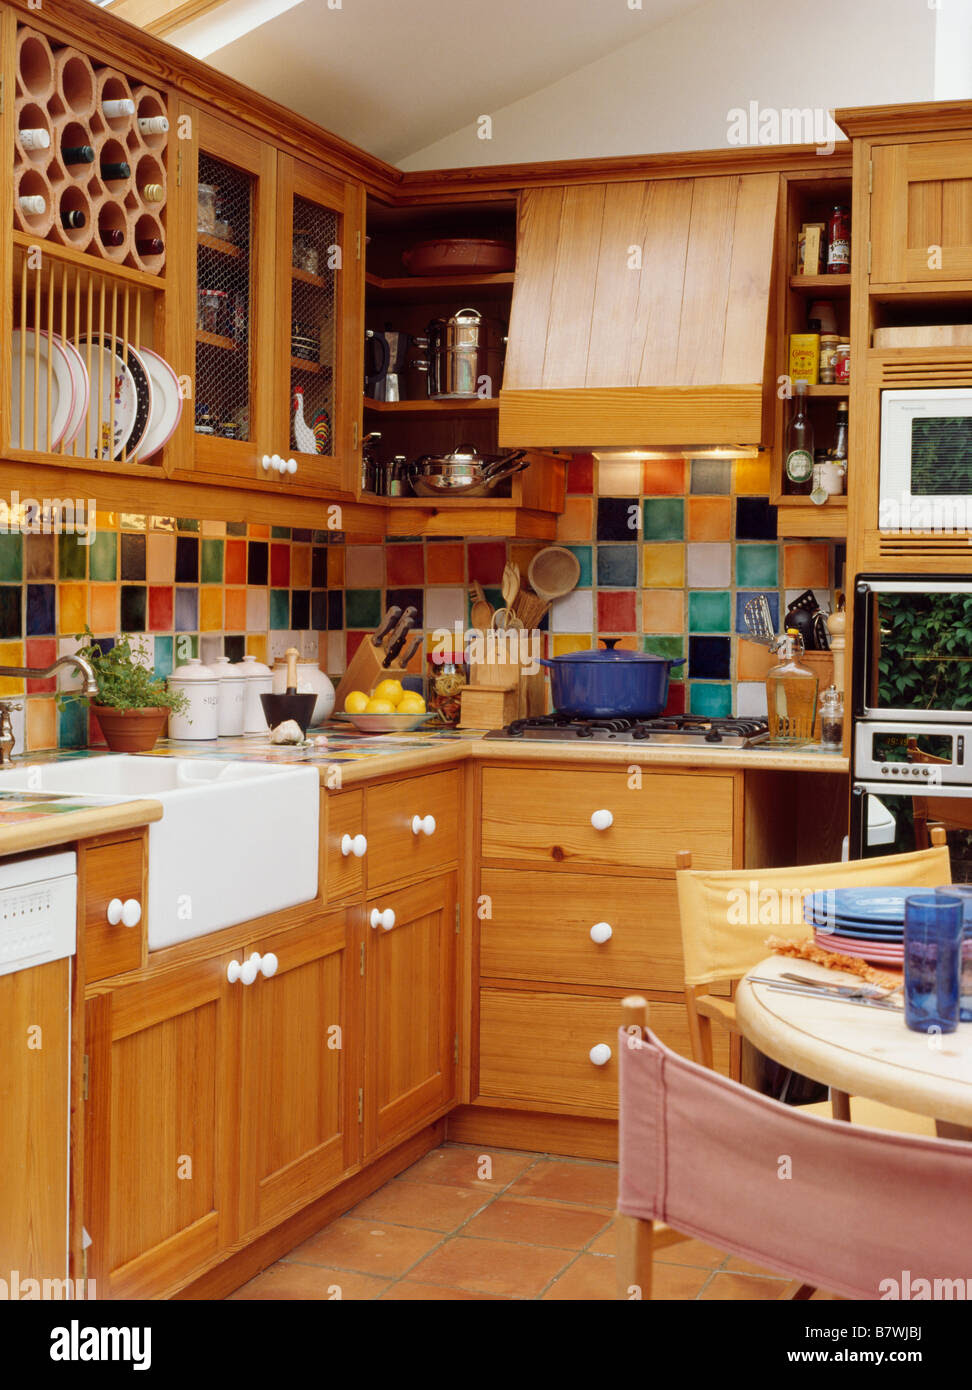 Image Result For Kitchen Design No